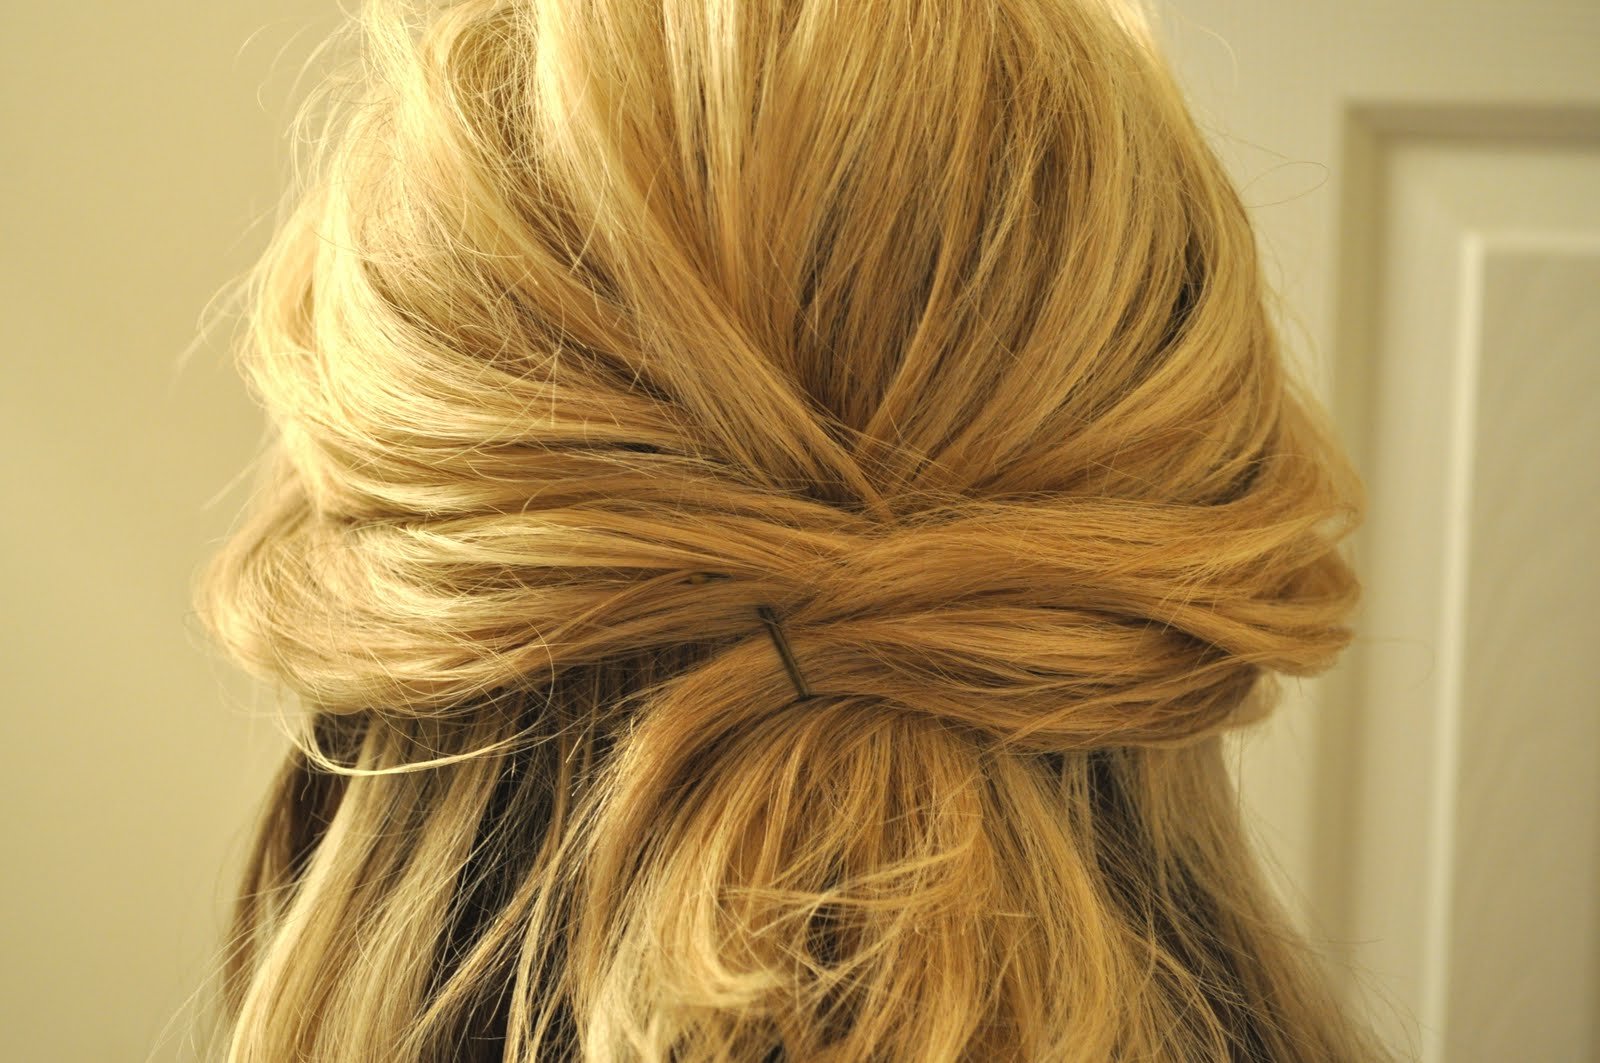 Half Up Half Down Wedding Hairstyles For Medium Length Hair: The Small Things Blog